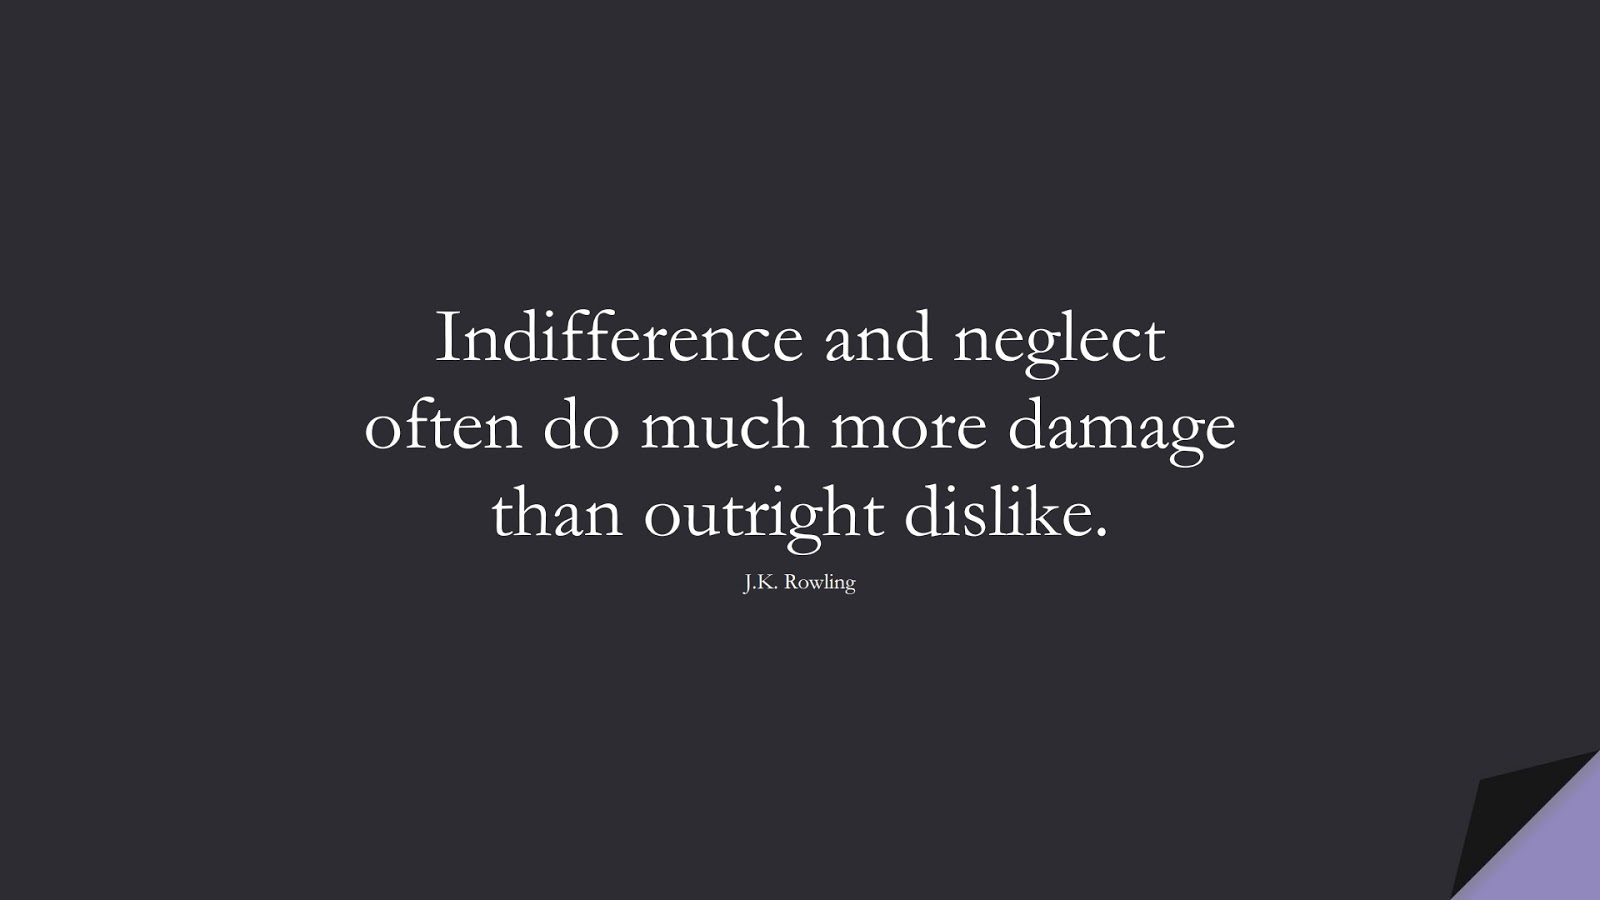 Indifference and neglect often do much more damage than outright dislike. (J.K. Rowling);  #HumanityQuotes